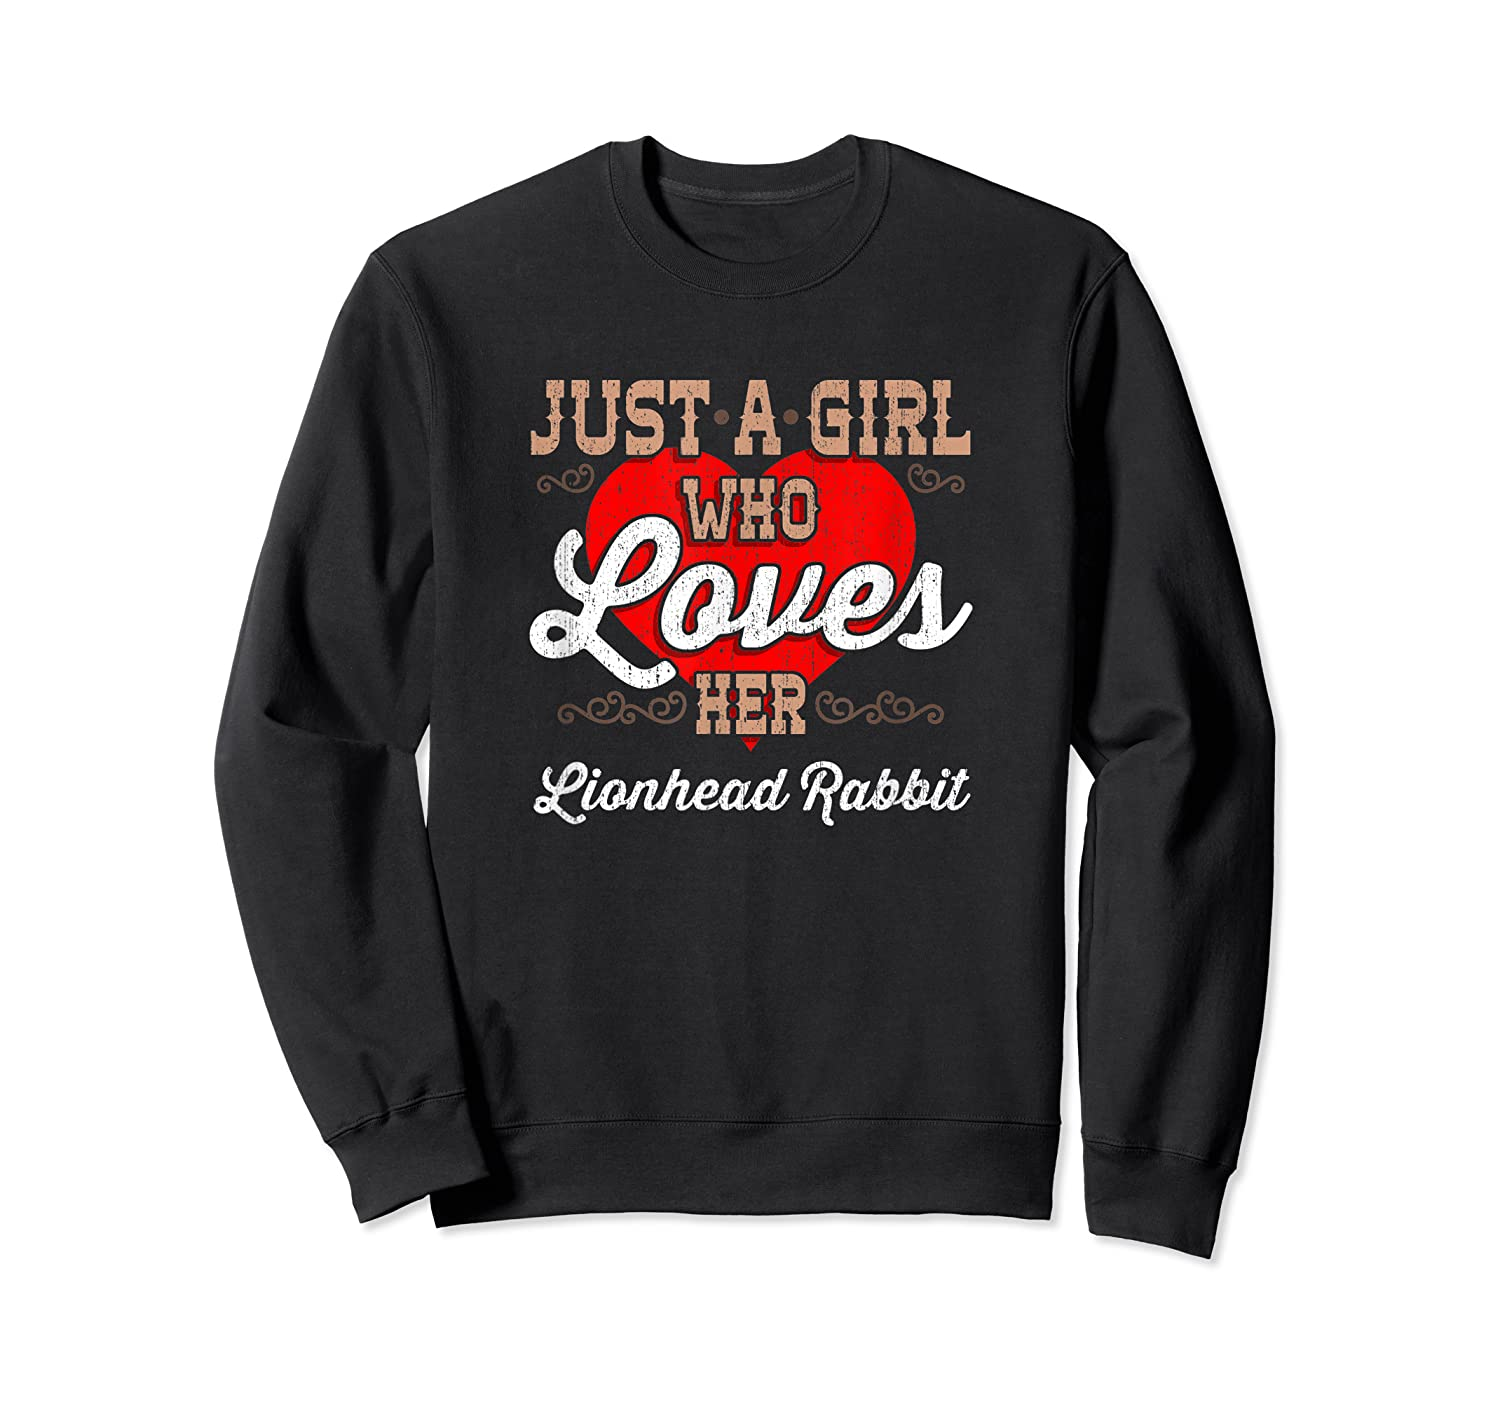 Just A Girl Who Loves Her Lionhead Rabbit Shirt For  Crewneck Sweater